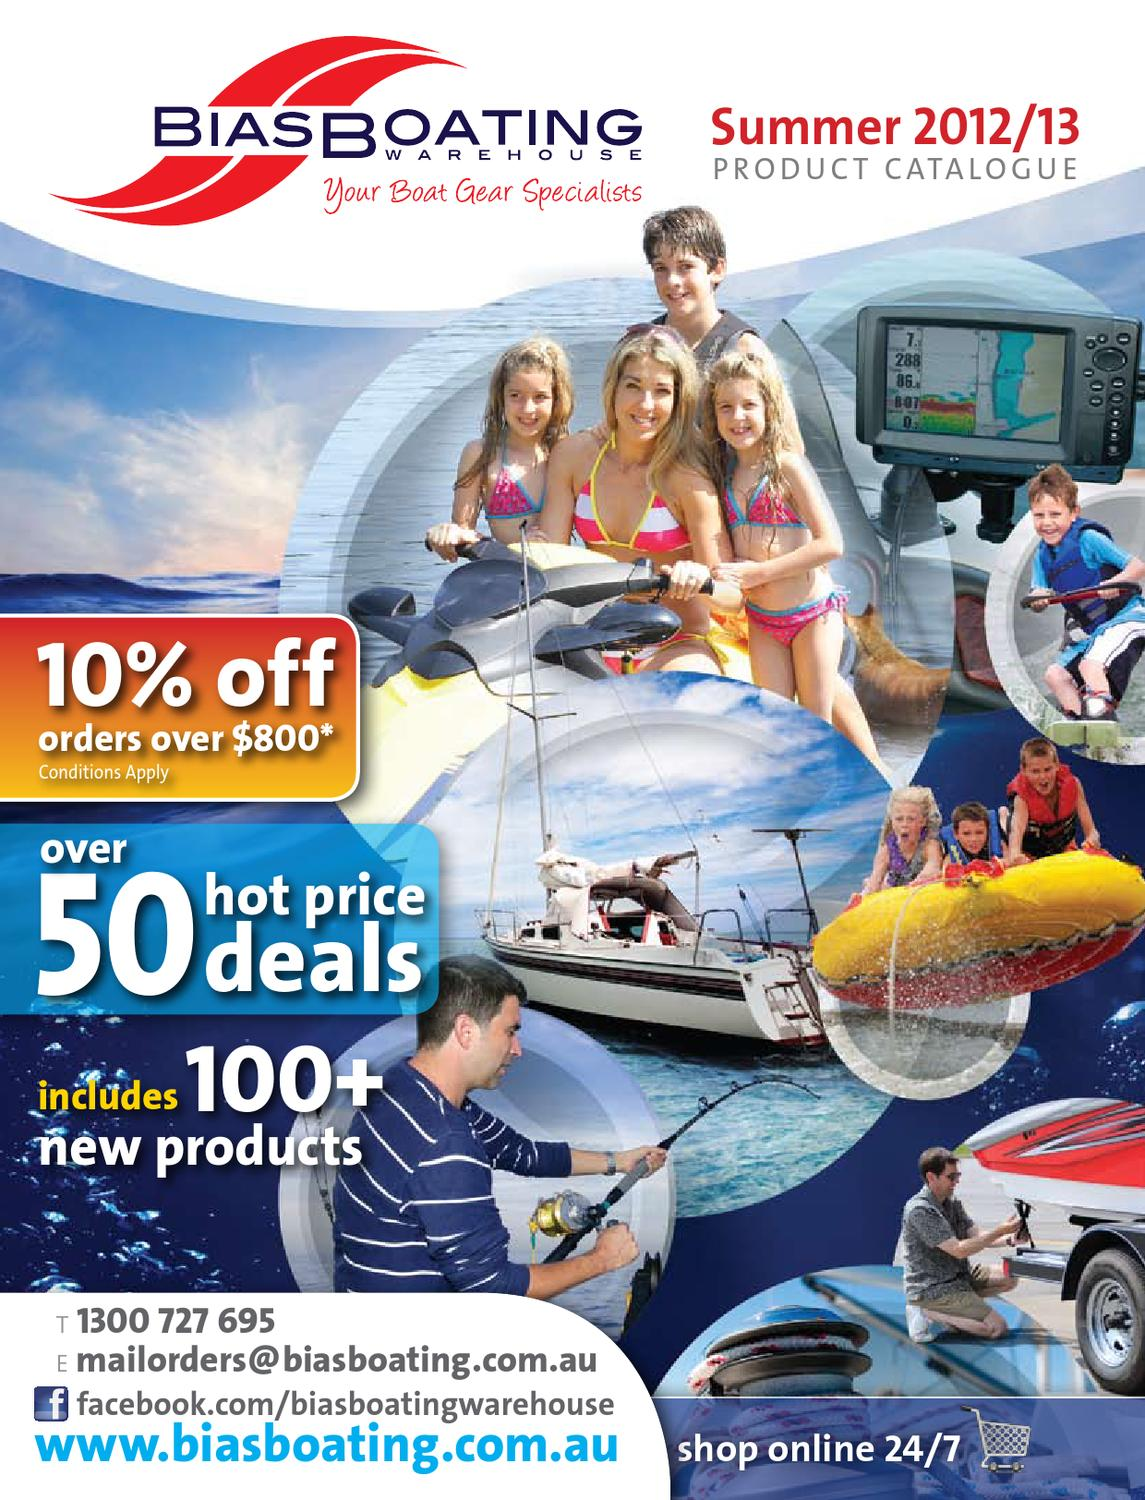 d8af9902a2 2012 13 Bias Boating Summer Product Catalogue by Bias Boating Warehouse -  issuu